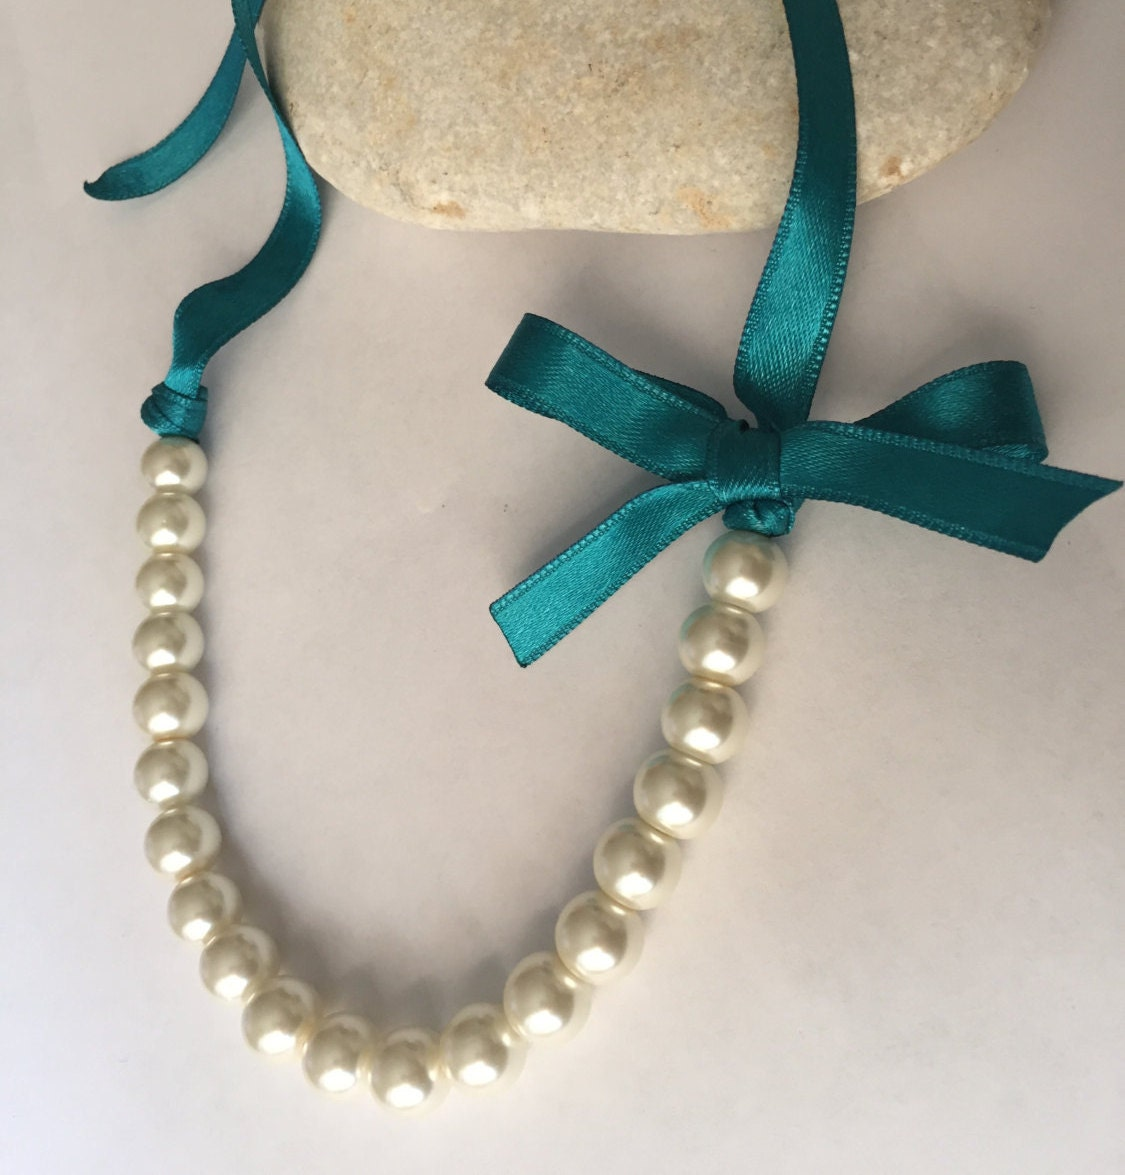 Pearl necklace with ribbon tie ivory 10mm pearls and teal for Ribbon tie necklace jewelry